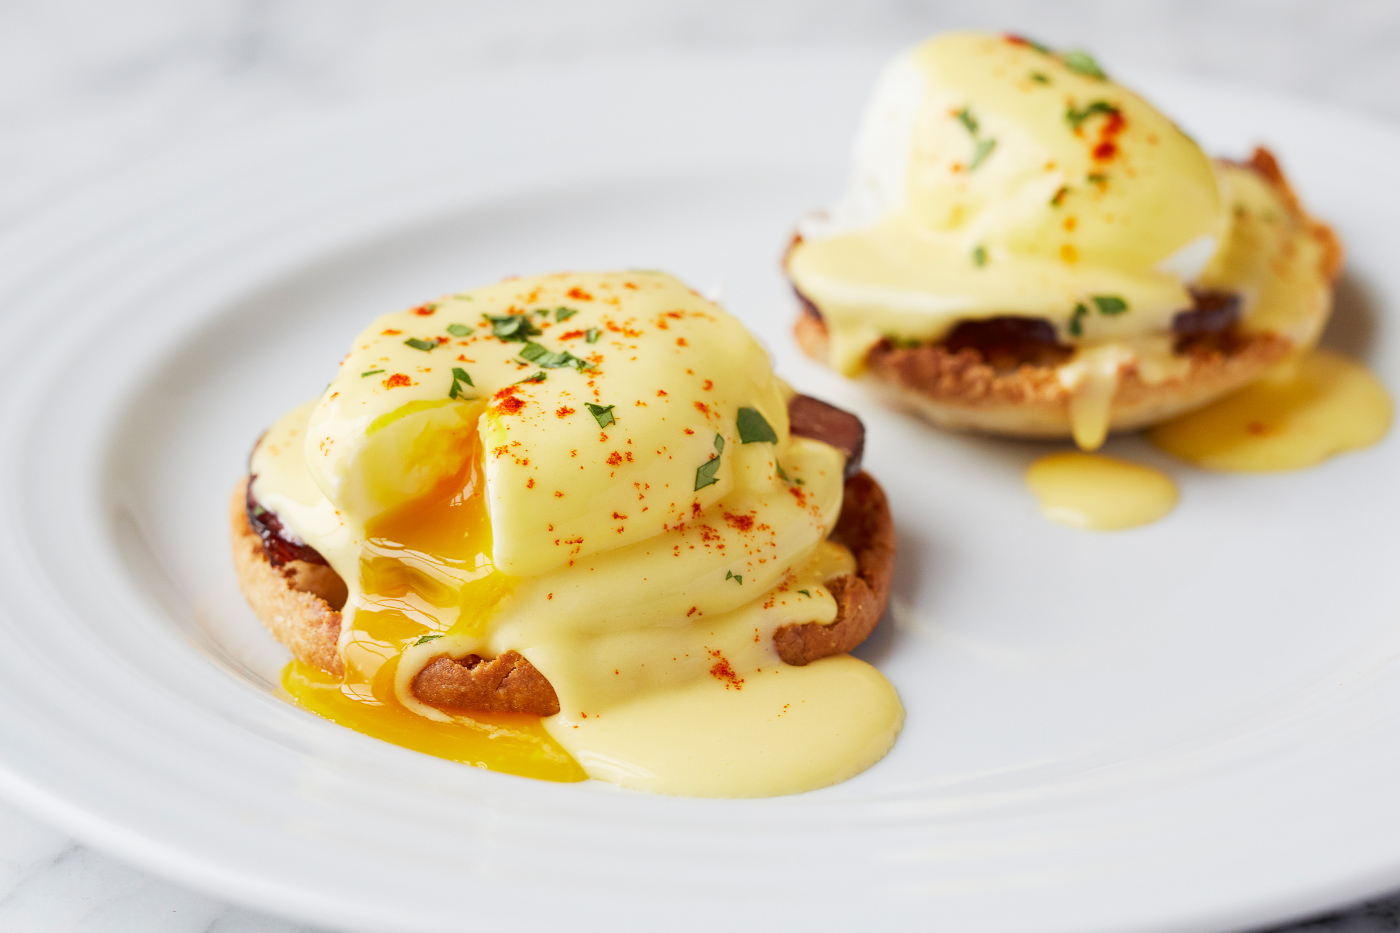 Make a breakfast worthy of kings and queens: Eggs Benedict